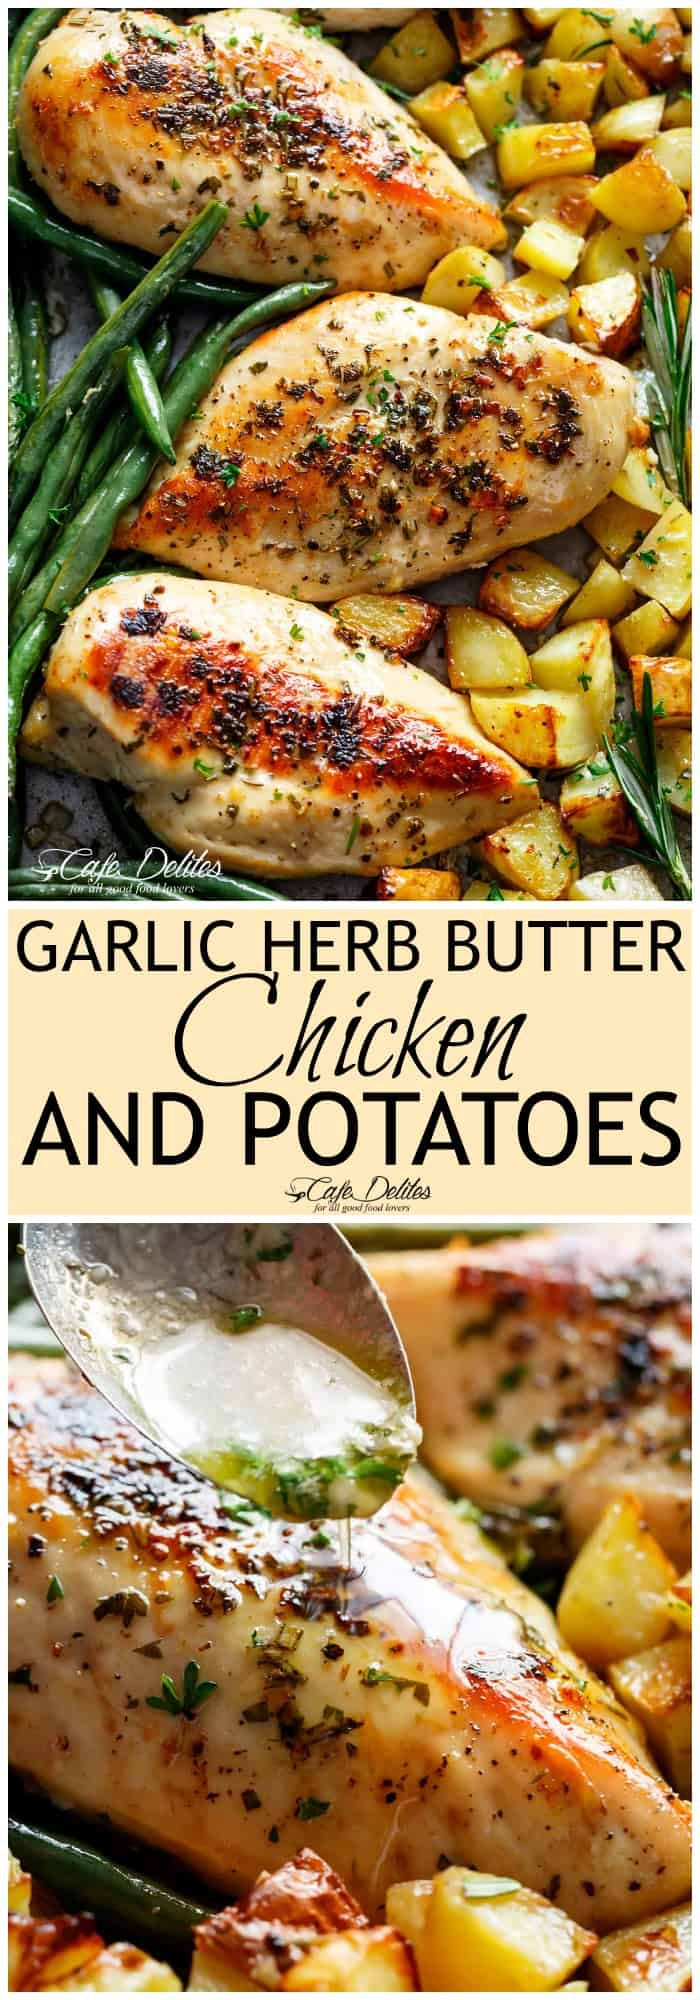 Sheet Pan Garlic Herb Butter Chicken has half the butter and fat WITHOUT compromising on a buttery flavour. A complete sheet pan chicken dinner with roasted potatoes and green beans! TASTES so sinful yet contains half the fat of a regular butter sauce for chicken that no one knows the difference! #onepandinnerschicken